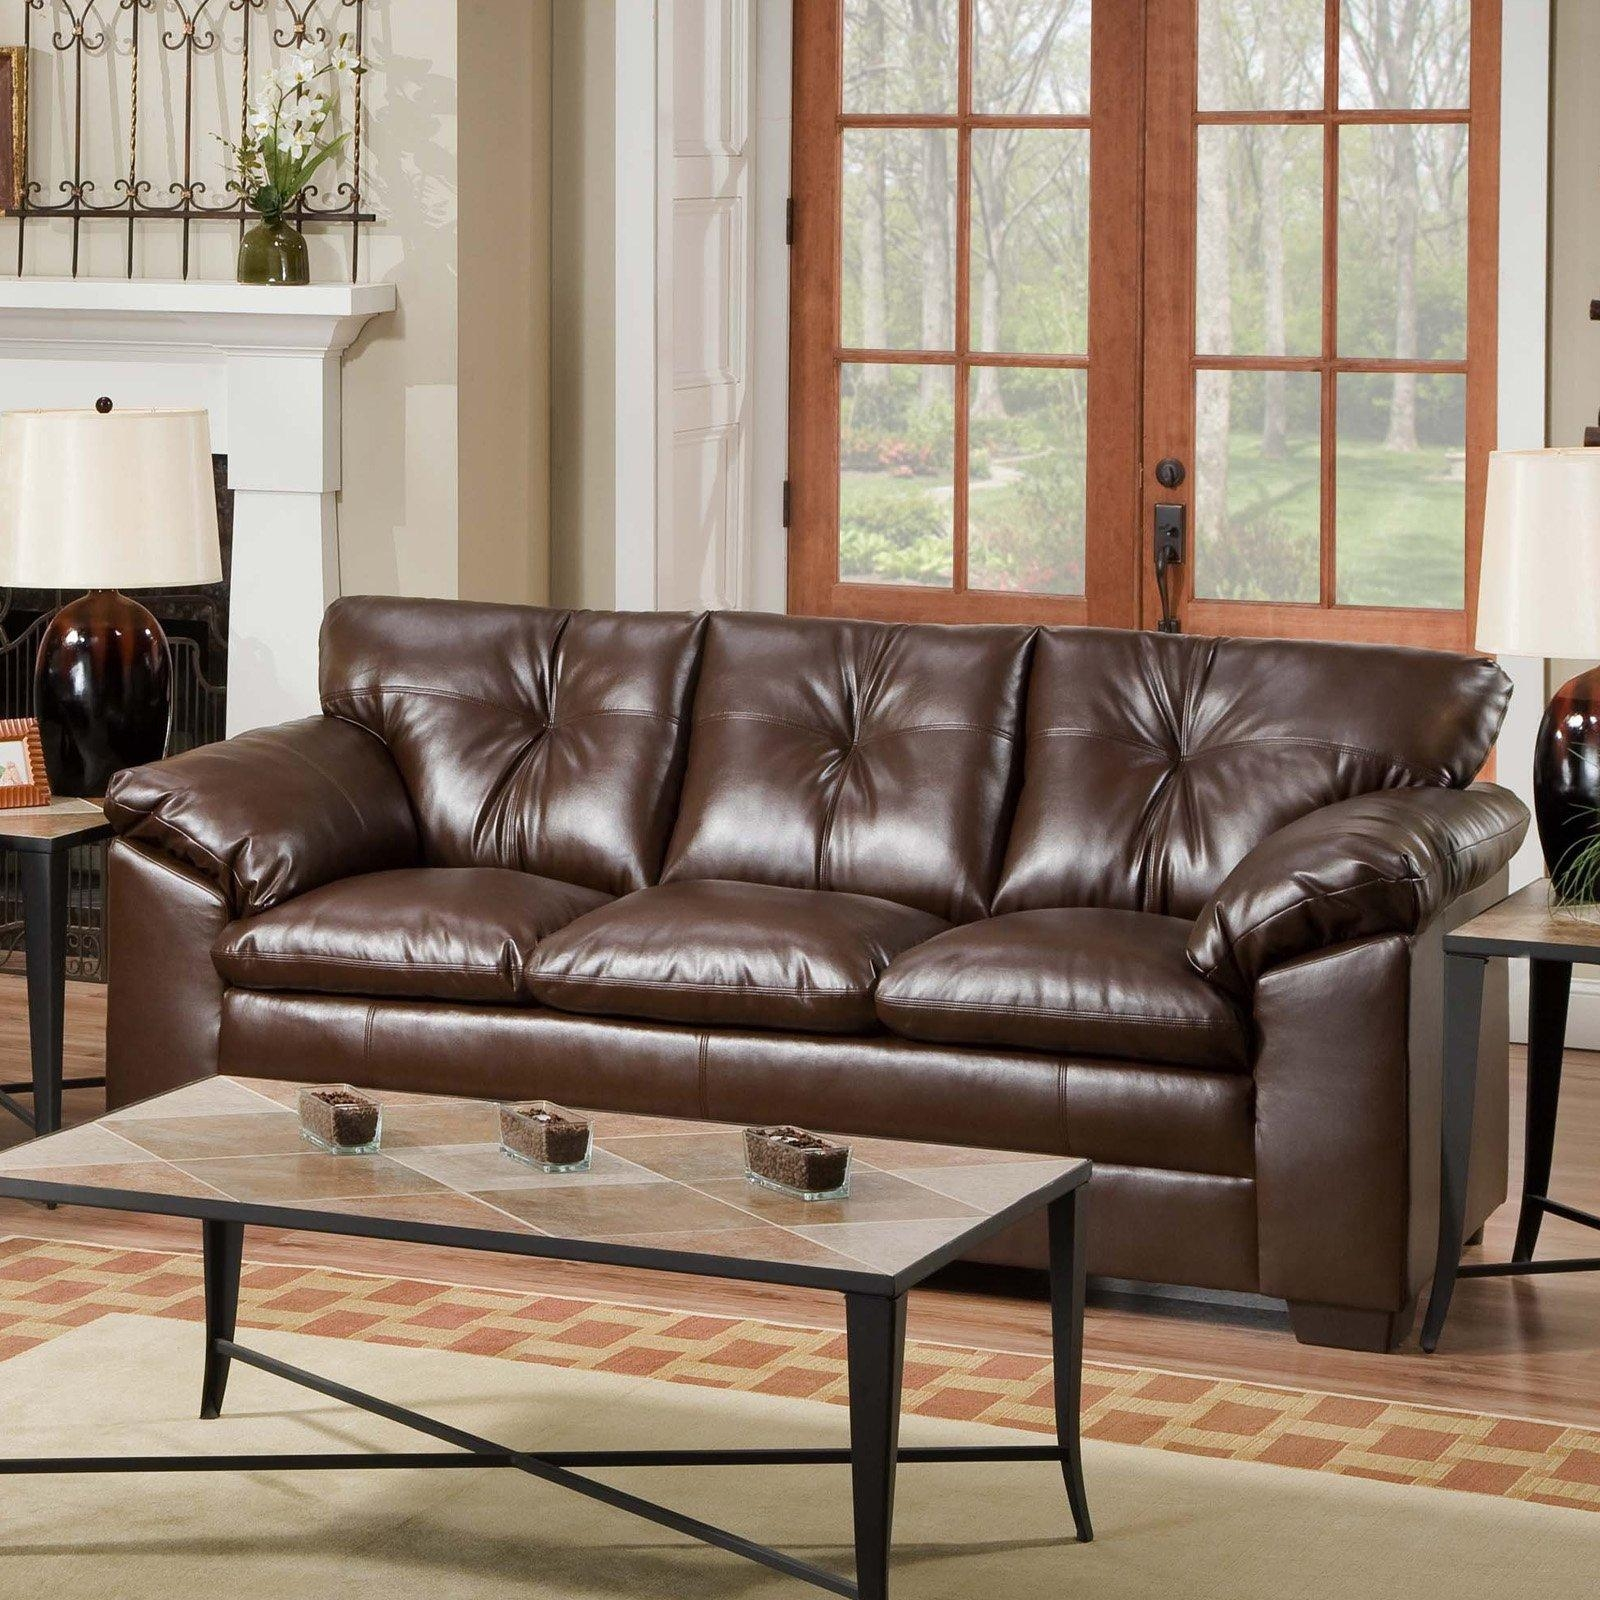 Pictures Of Living Room With Brown Leather Couch – Creditrestore With Simmons Bonded Leather Sofas (Image 5 of 20)